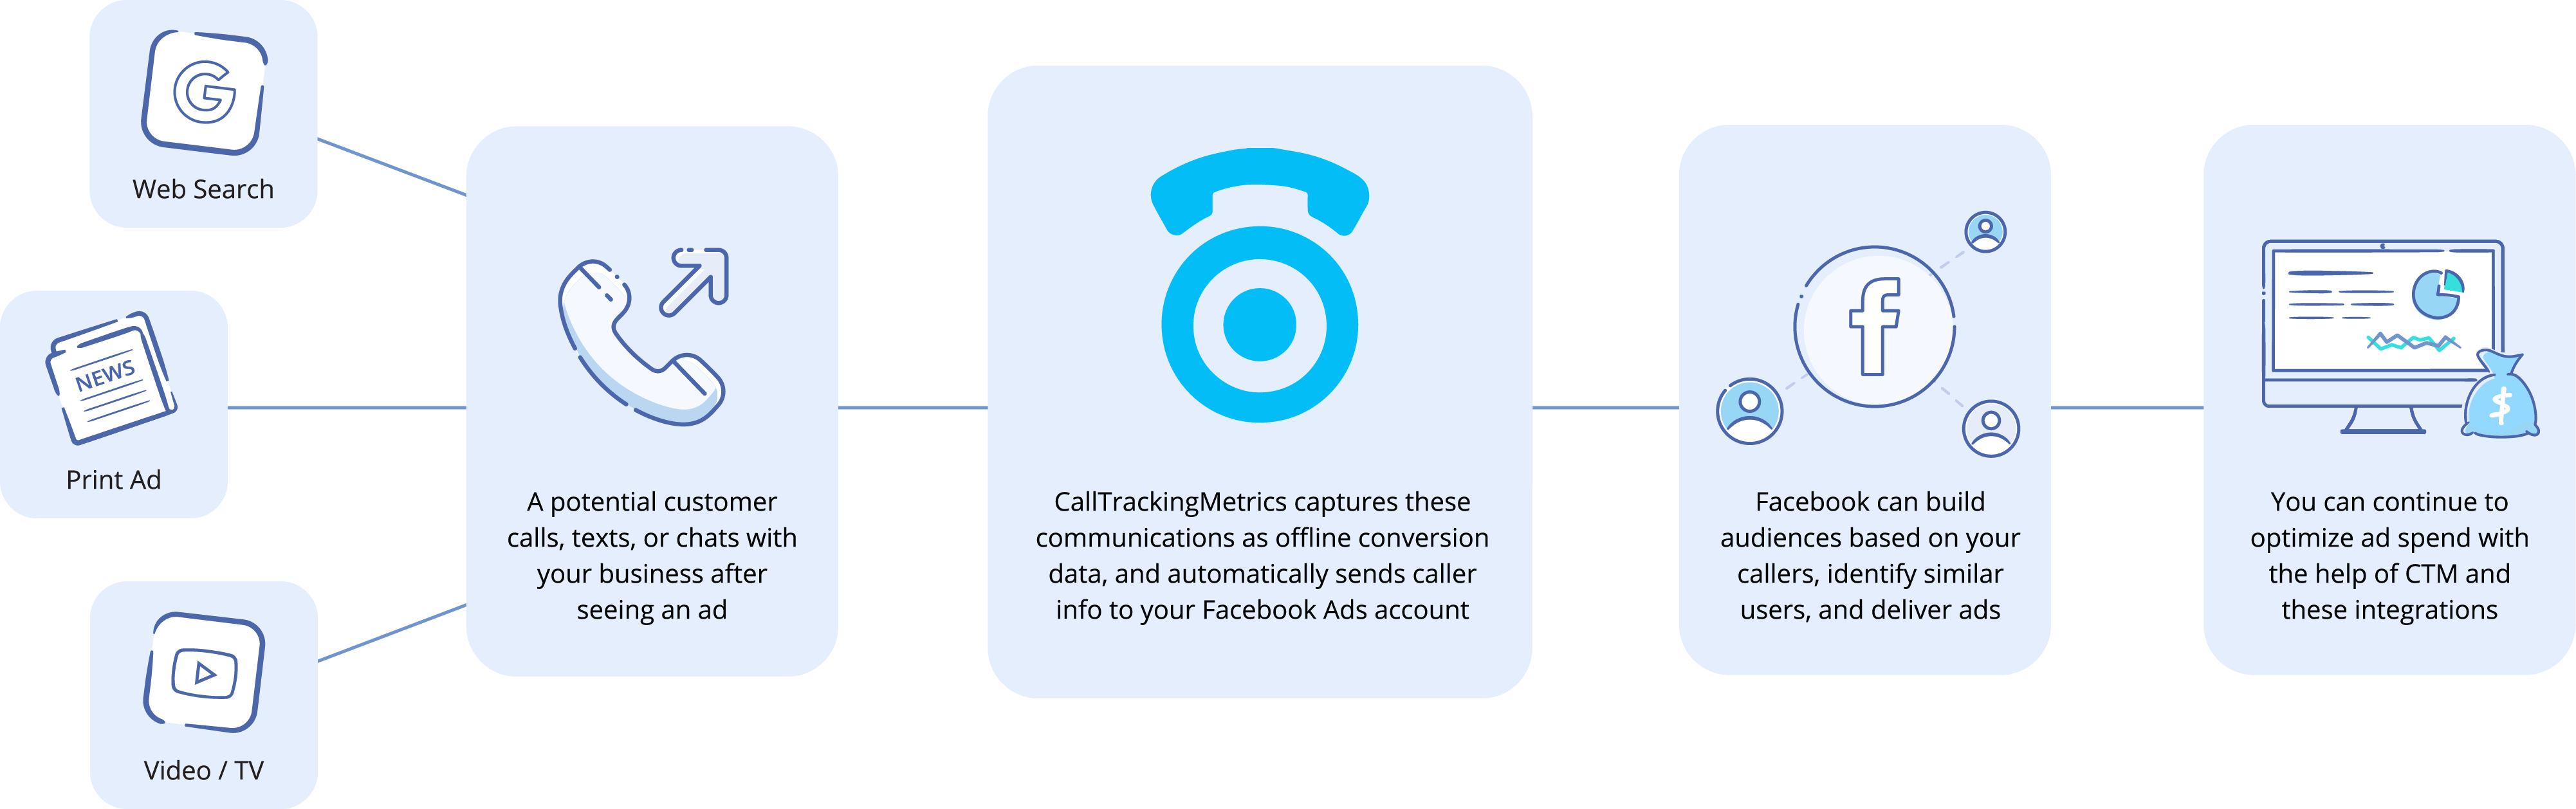 CallTrackingMetrics integration with Facebook